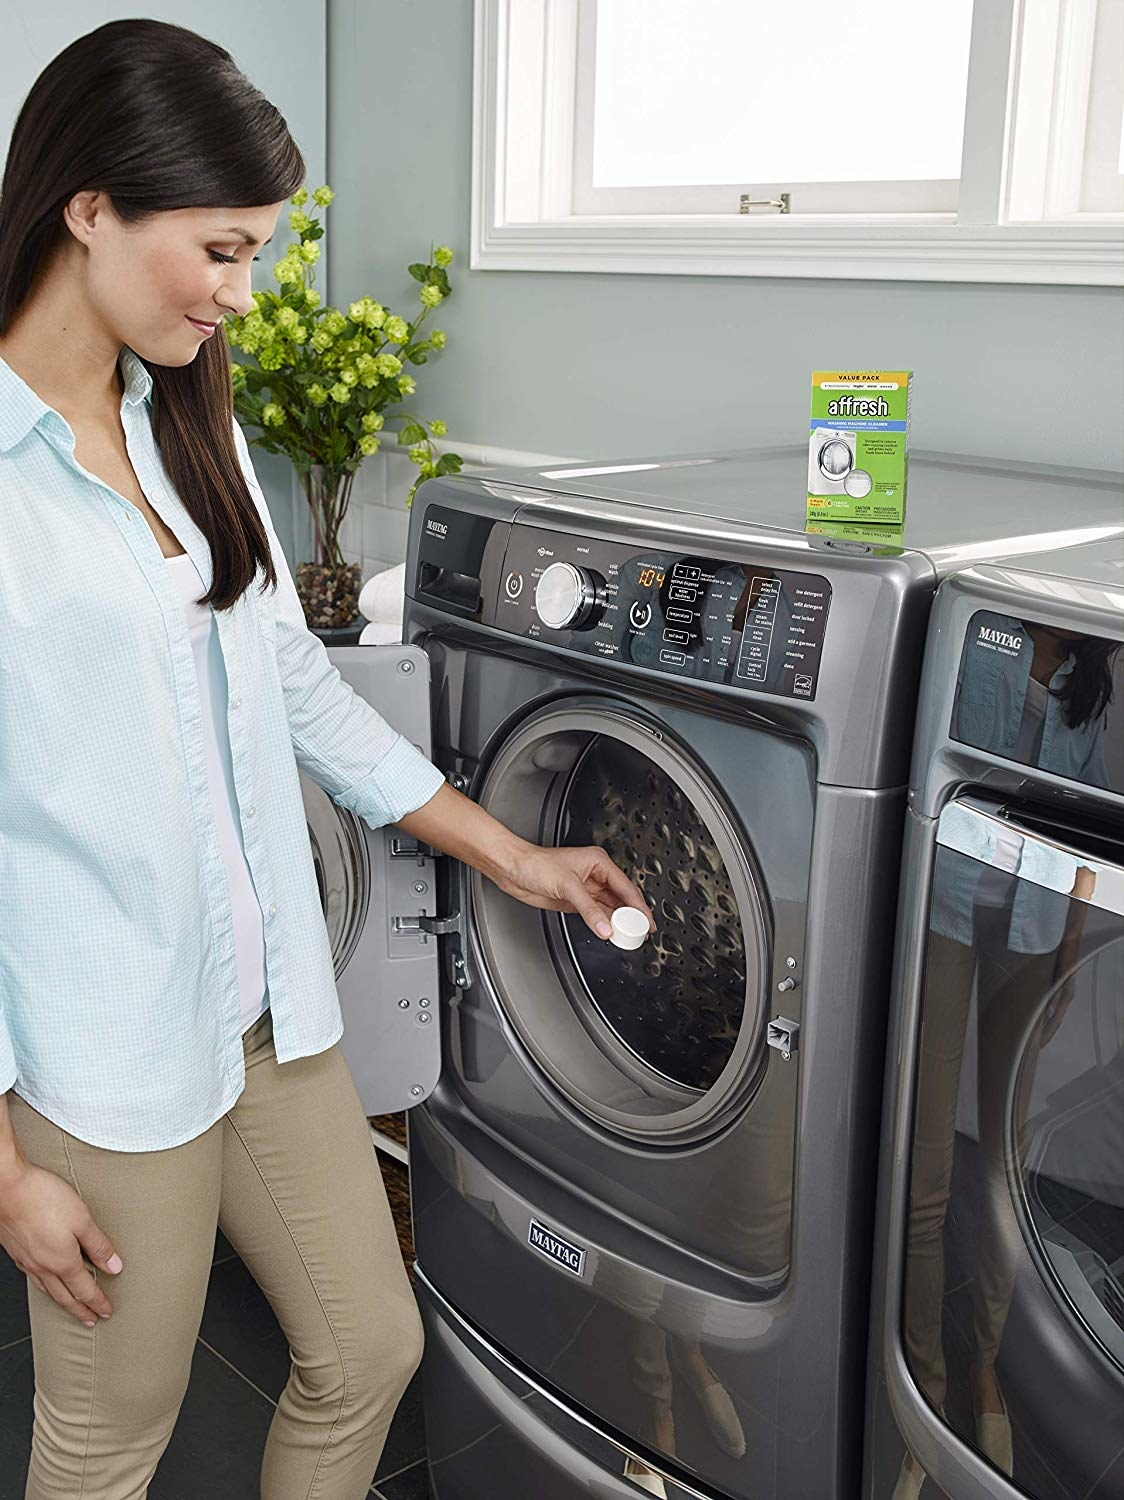 model puts tablet in washer